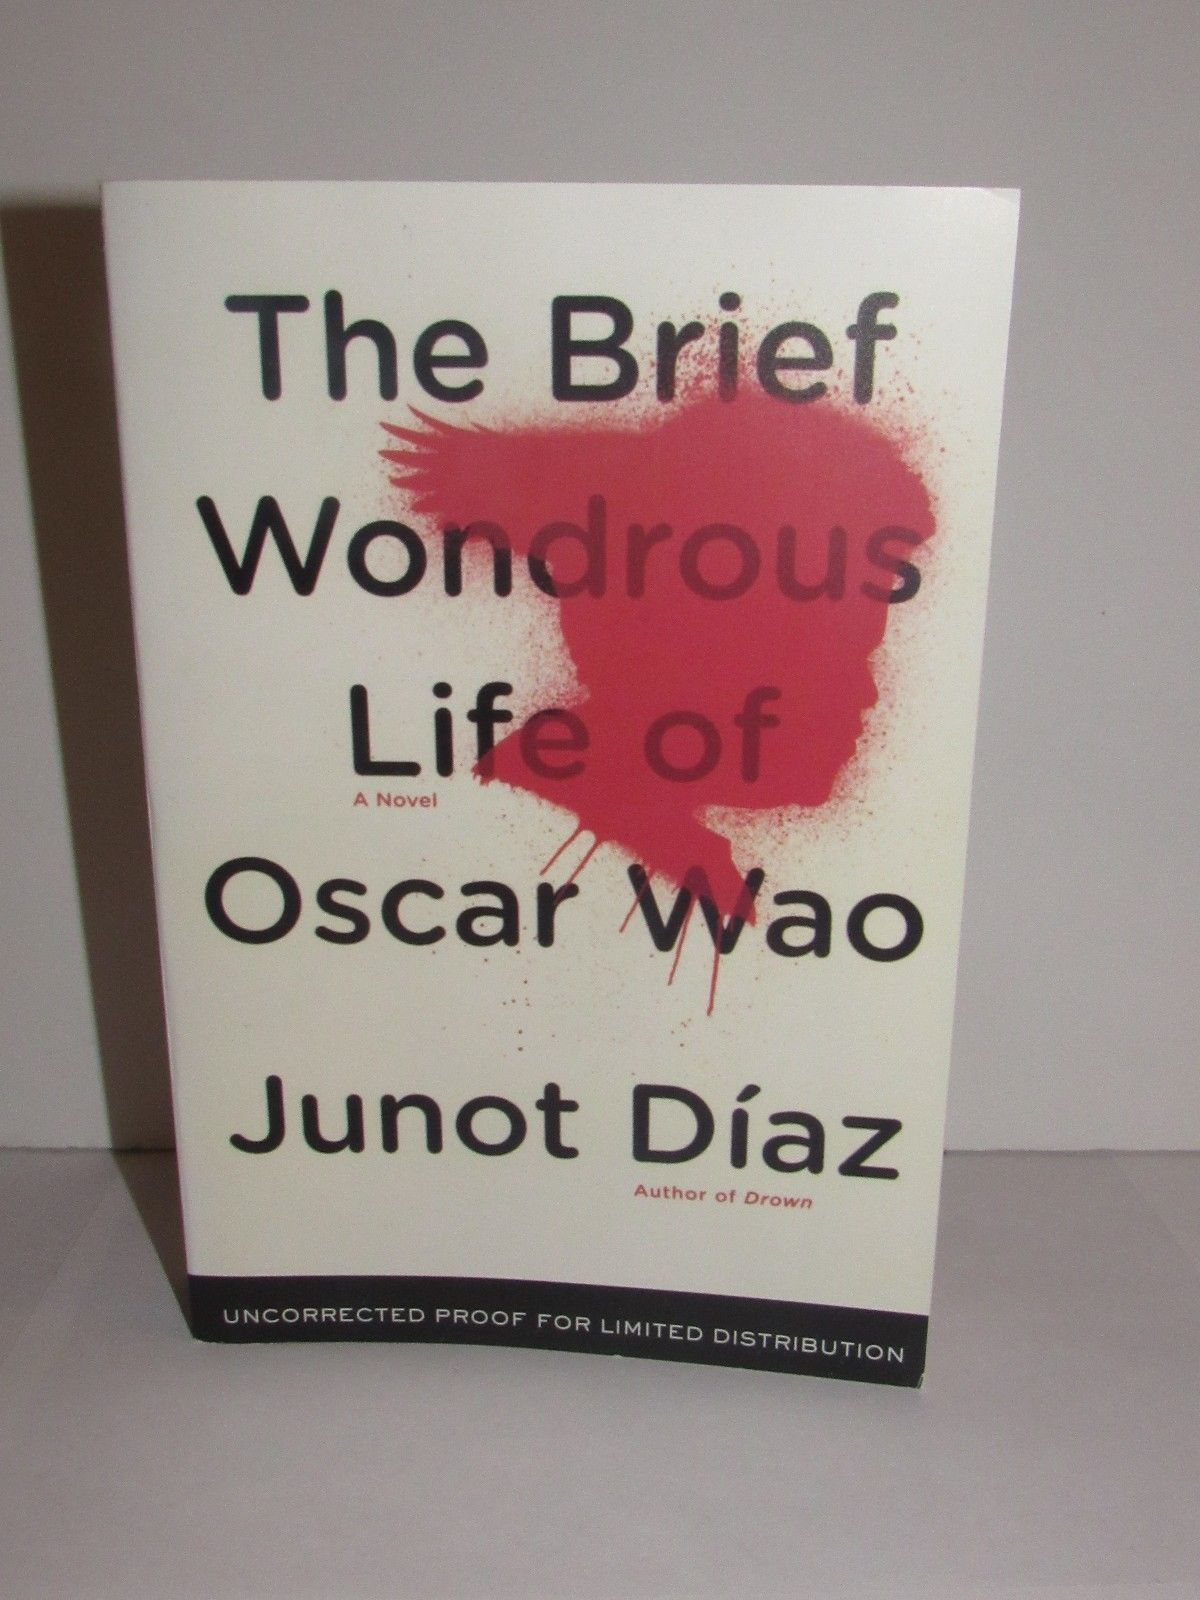 american dream in drown by junot diaz The american dream striving to achieve the image of the american dreamof one's own home, a family and a respectful jobis the overarching theme for this collection of stories it is the immigrant's american dream.